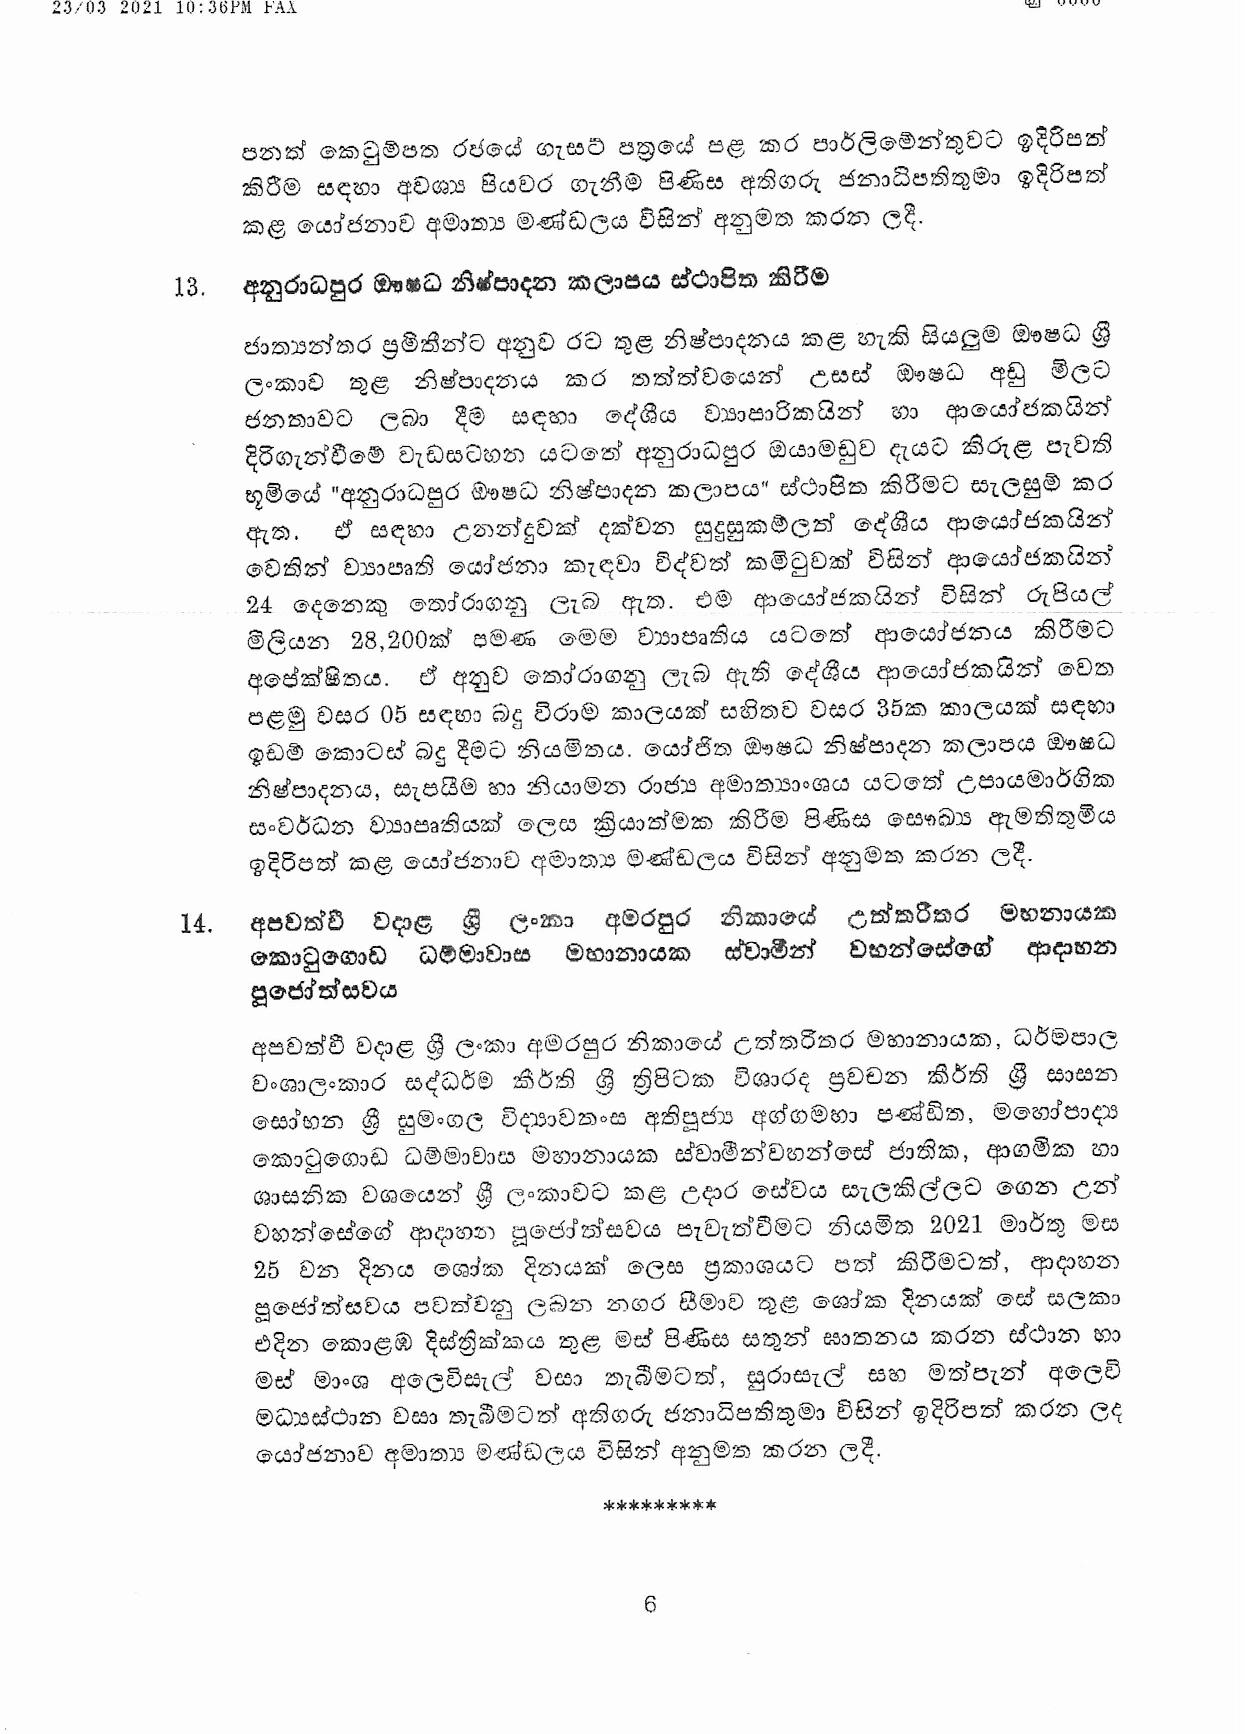 Cabinet Decision on 23.03.2021 page 006